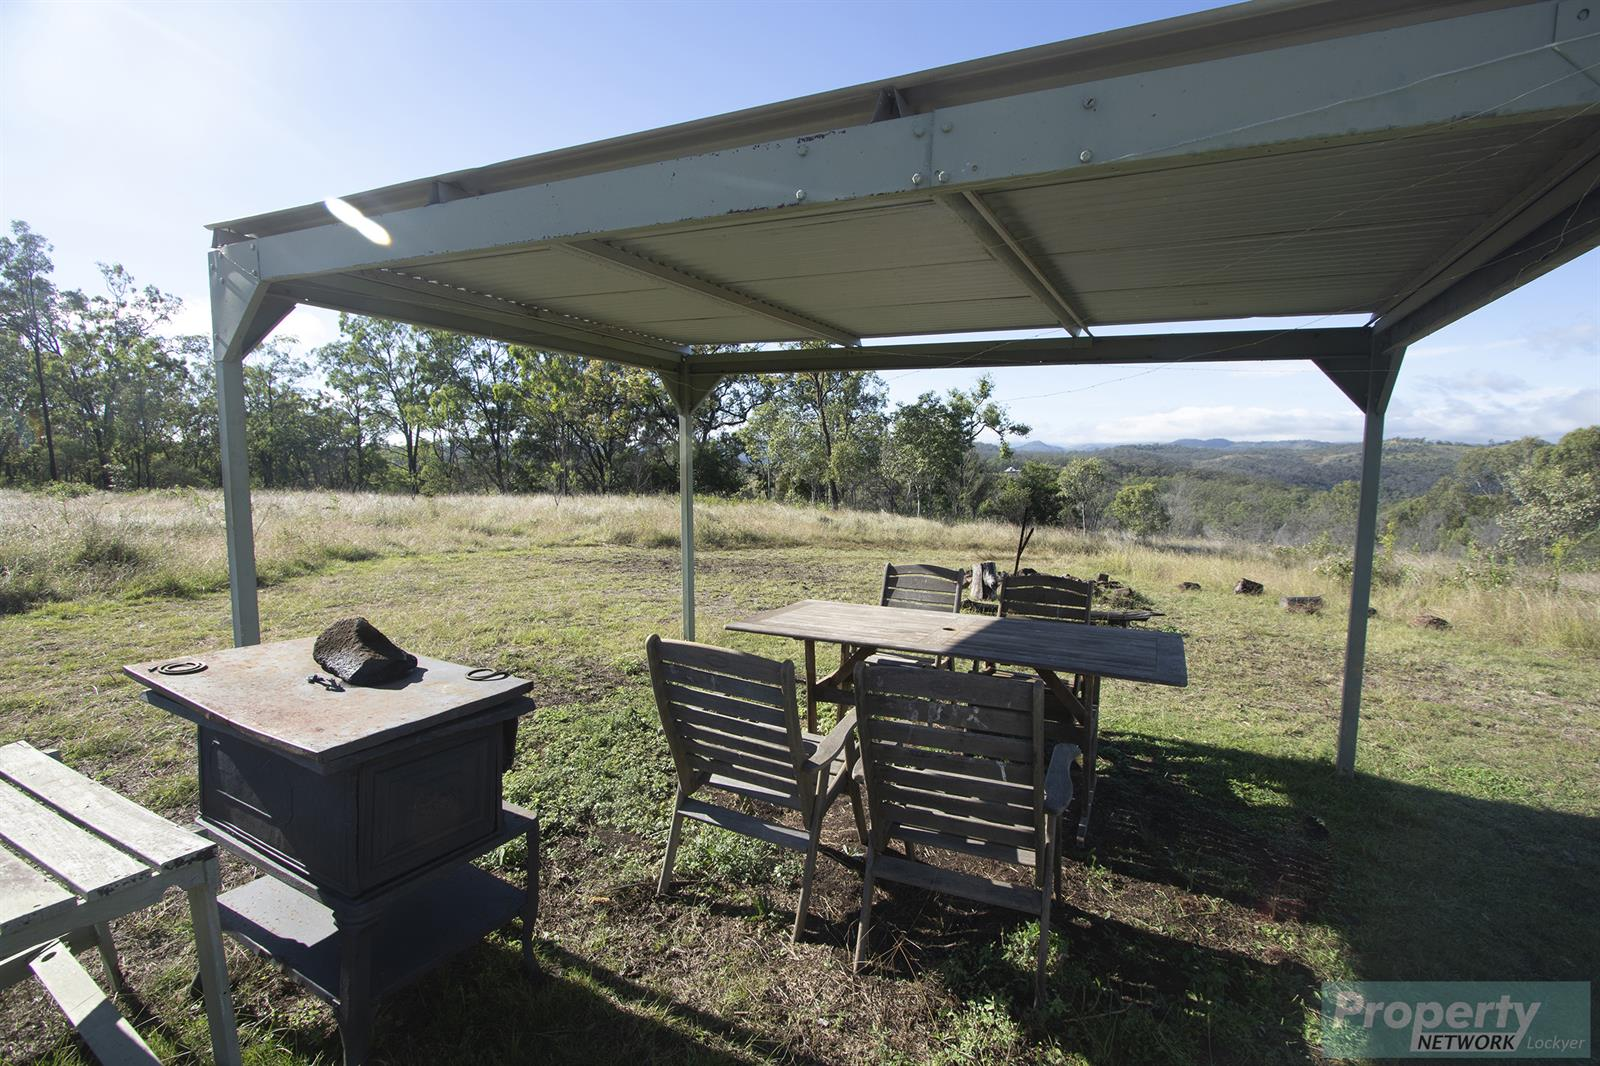 FORDSDALE QLD 4343 (address available on request) Image 24